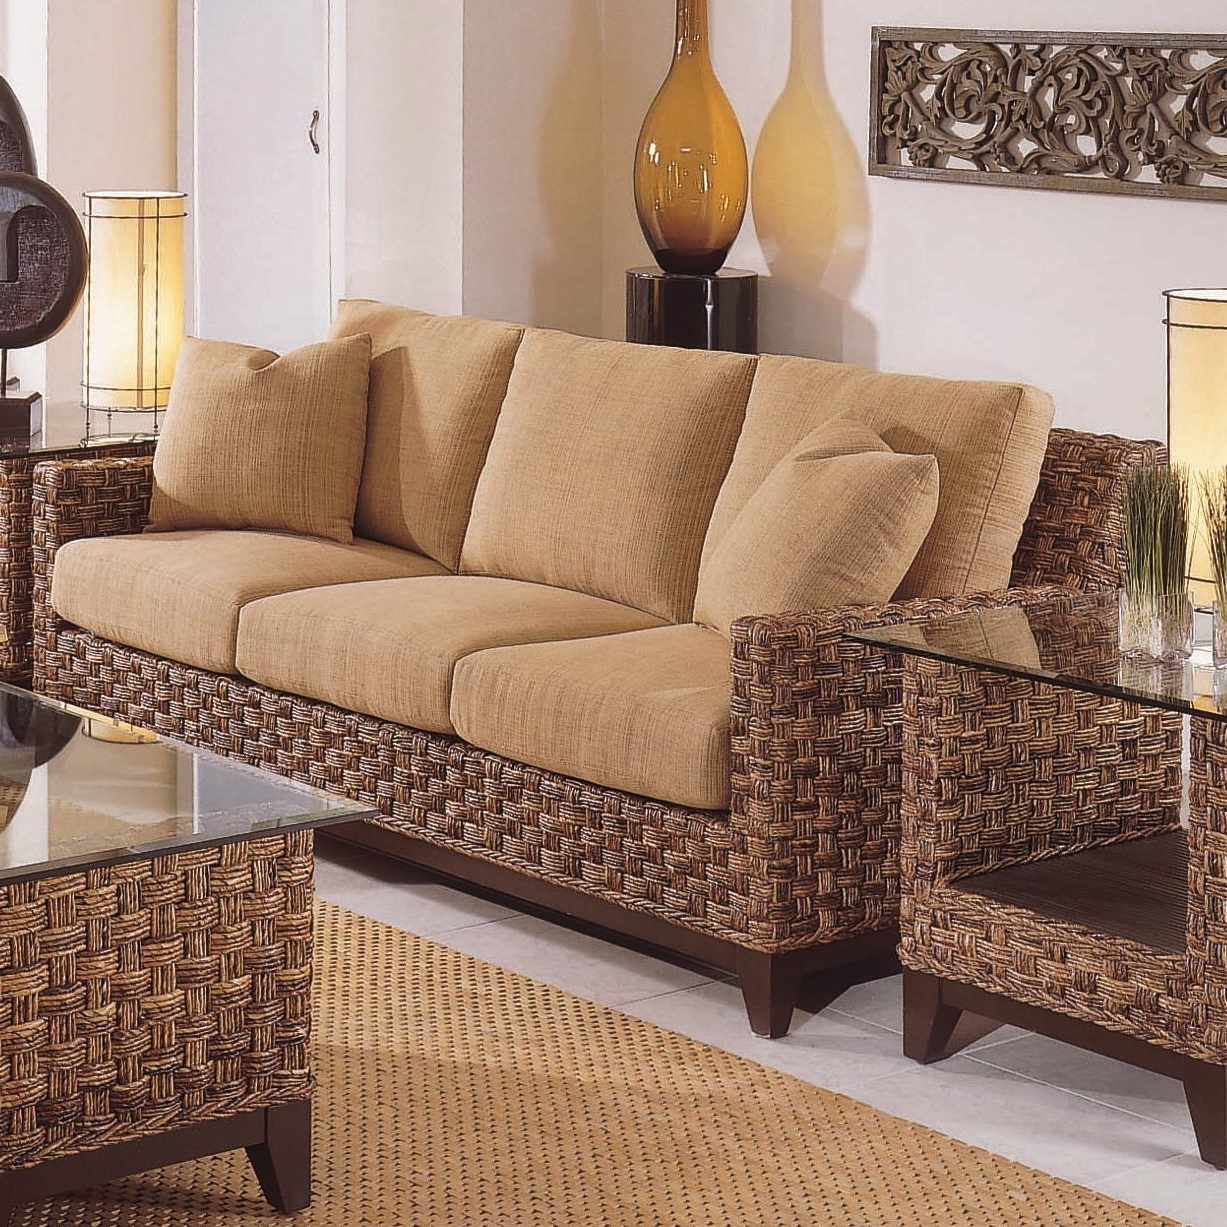 Most Current Braxton Culler Tribeca 2960 Modern Wicker Three Seat Queen Sleeper Inside Braxton Sofas (View 4 of 20)